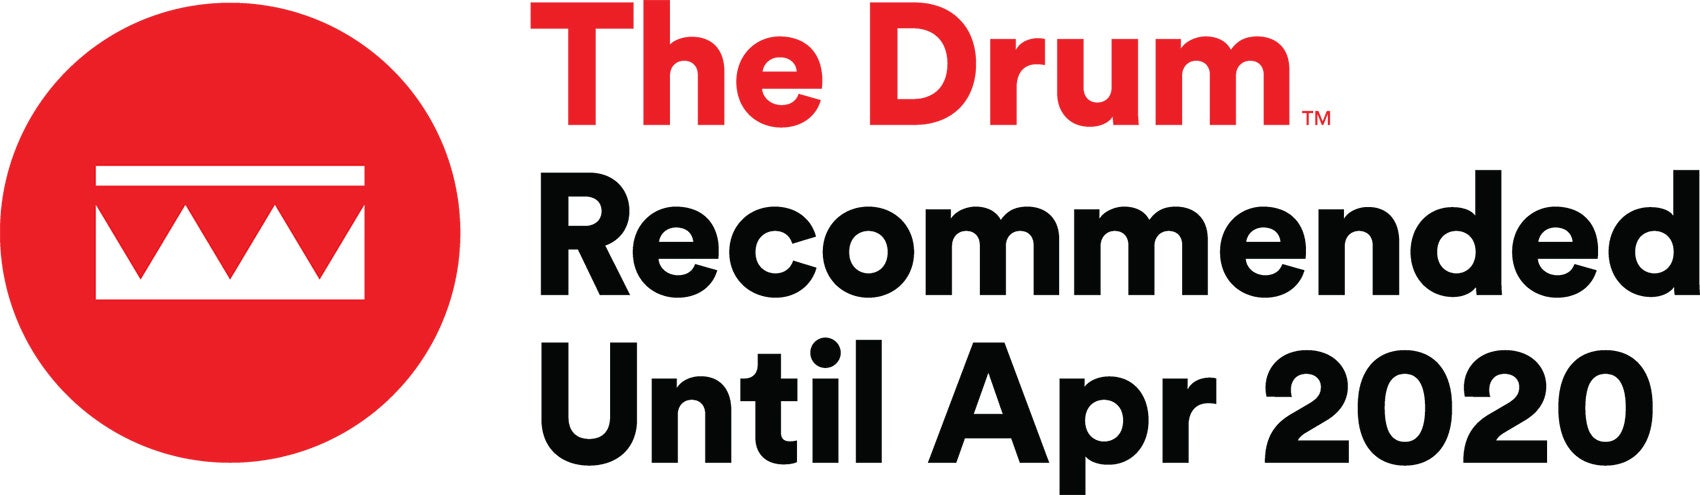 The Drum Recommended logo